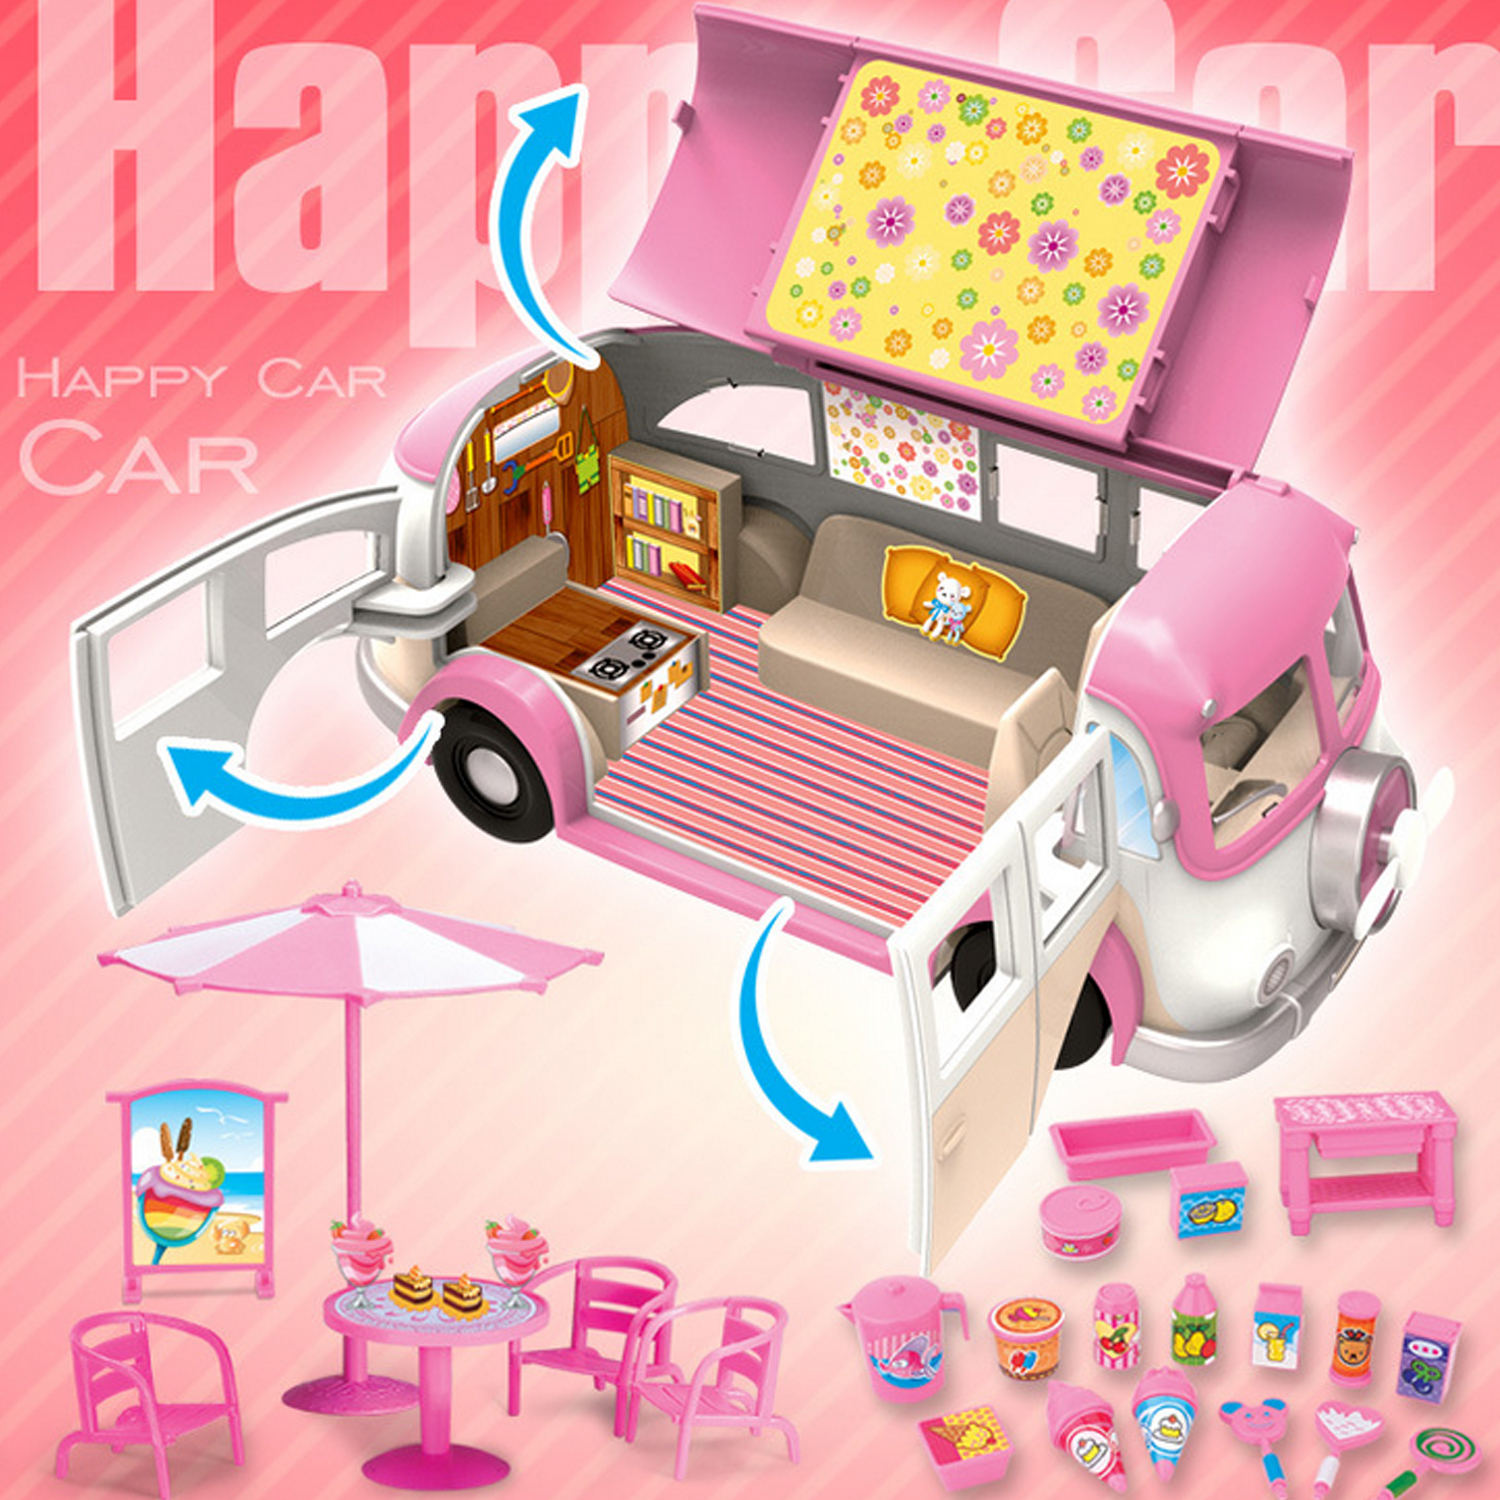 Kids Cute Mini Simulation Plastic Pink Motorhome Camper Car Vehicle Dollhouse Furniture Accessories Pretend Play Toy